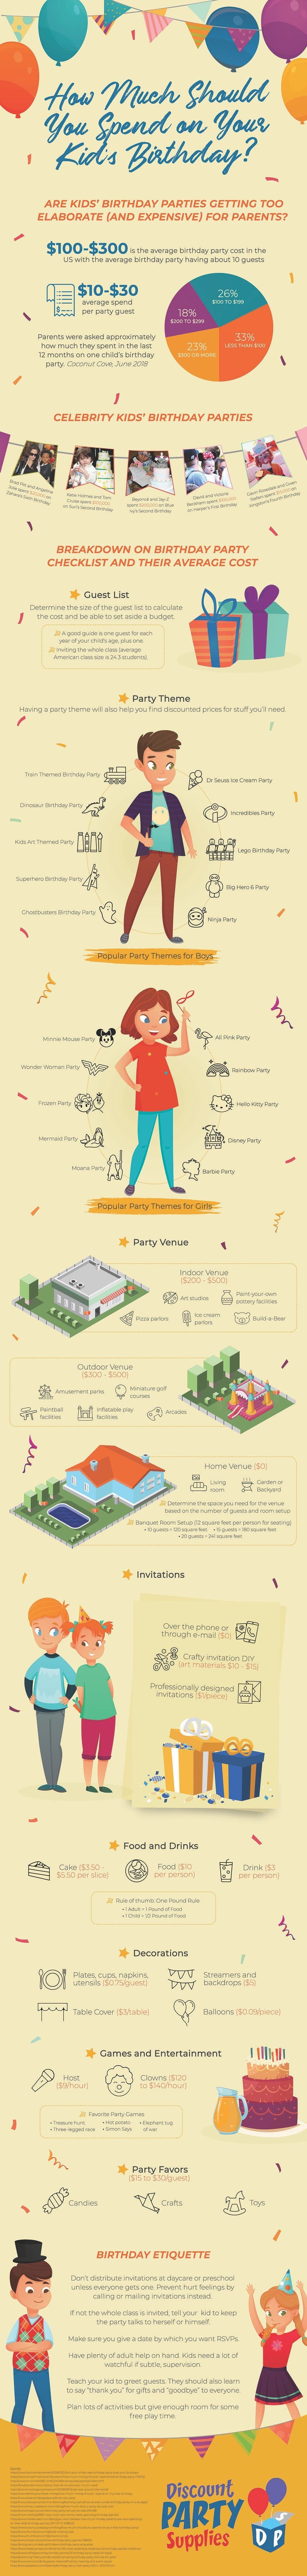 How Much To Spend On Your Kid's Birthday Party? #infographic